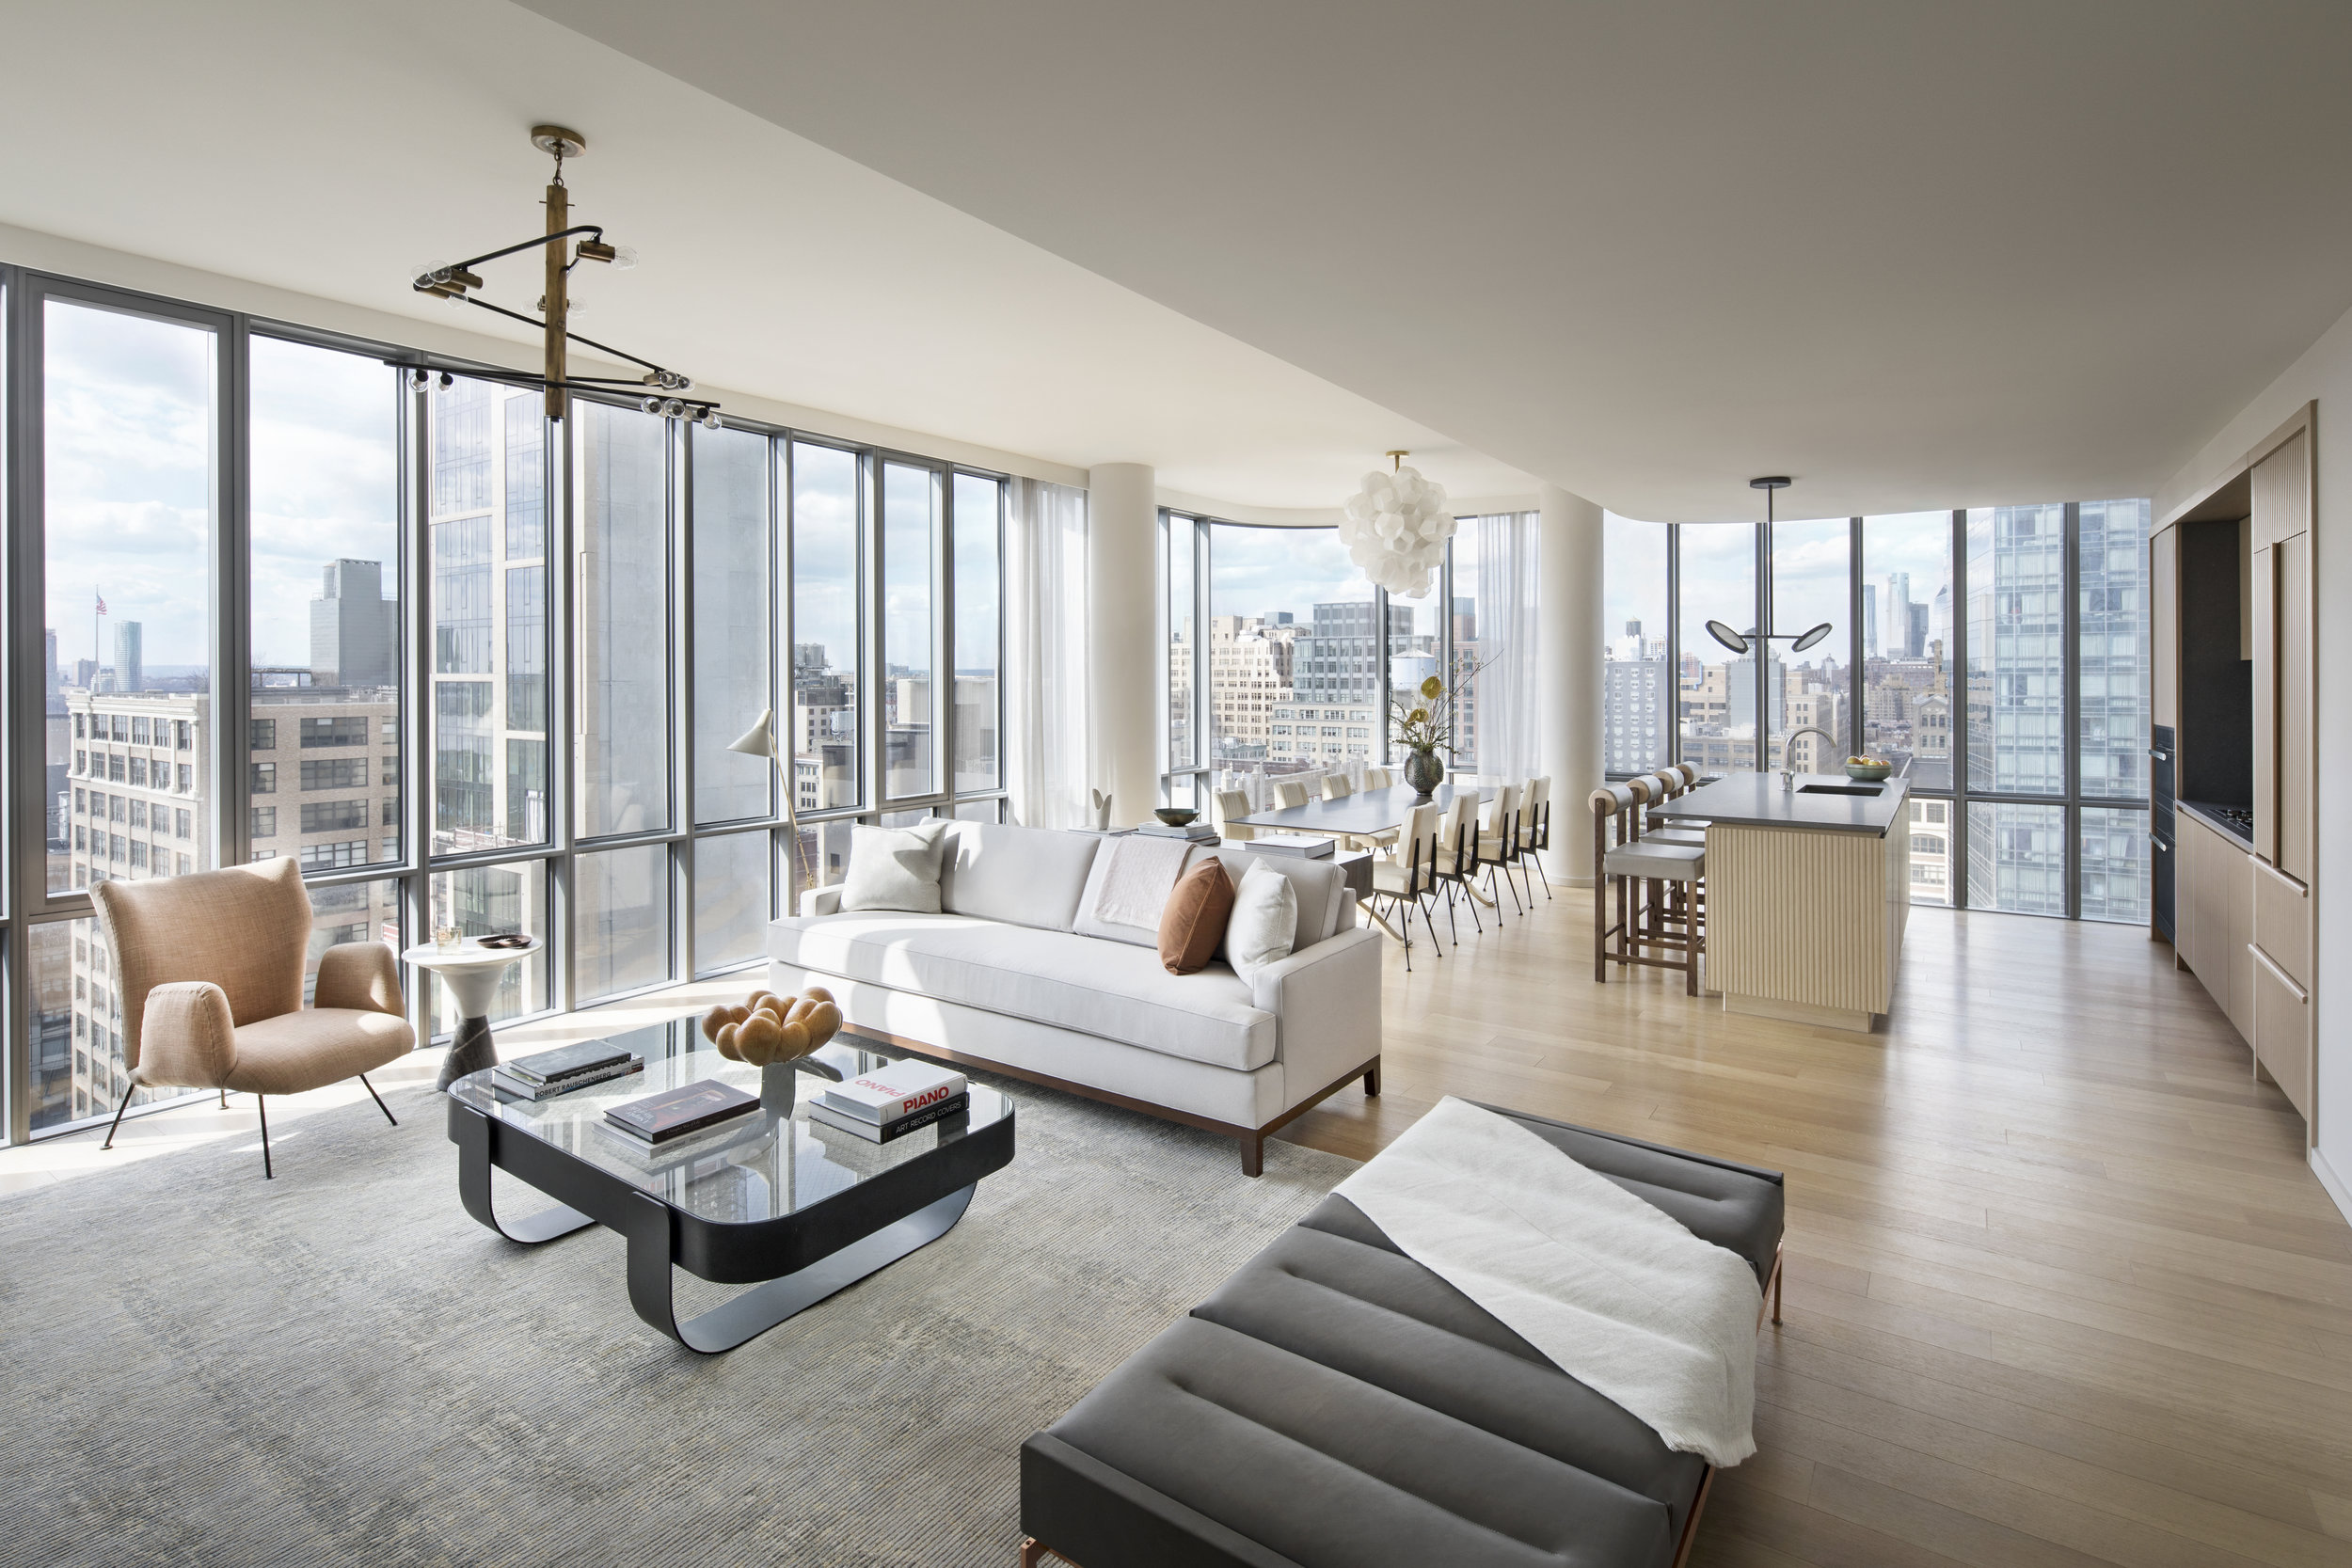 Get A First Look At A Damon Liss- Designed Model Unit In Pritzker Prize Winner Renzo Piano's 565 Broome SoHo